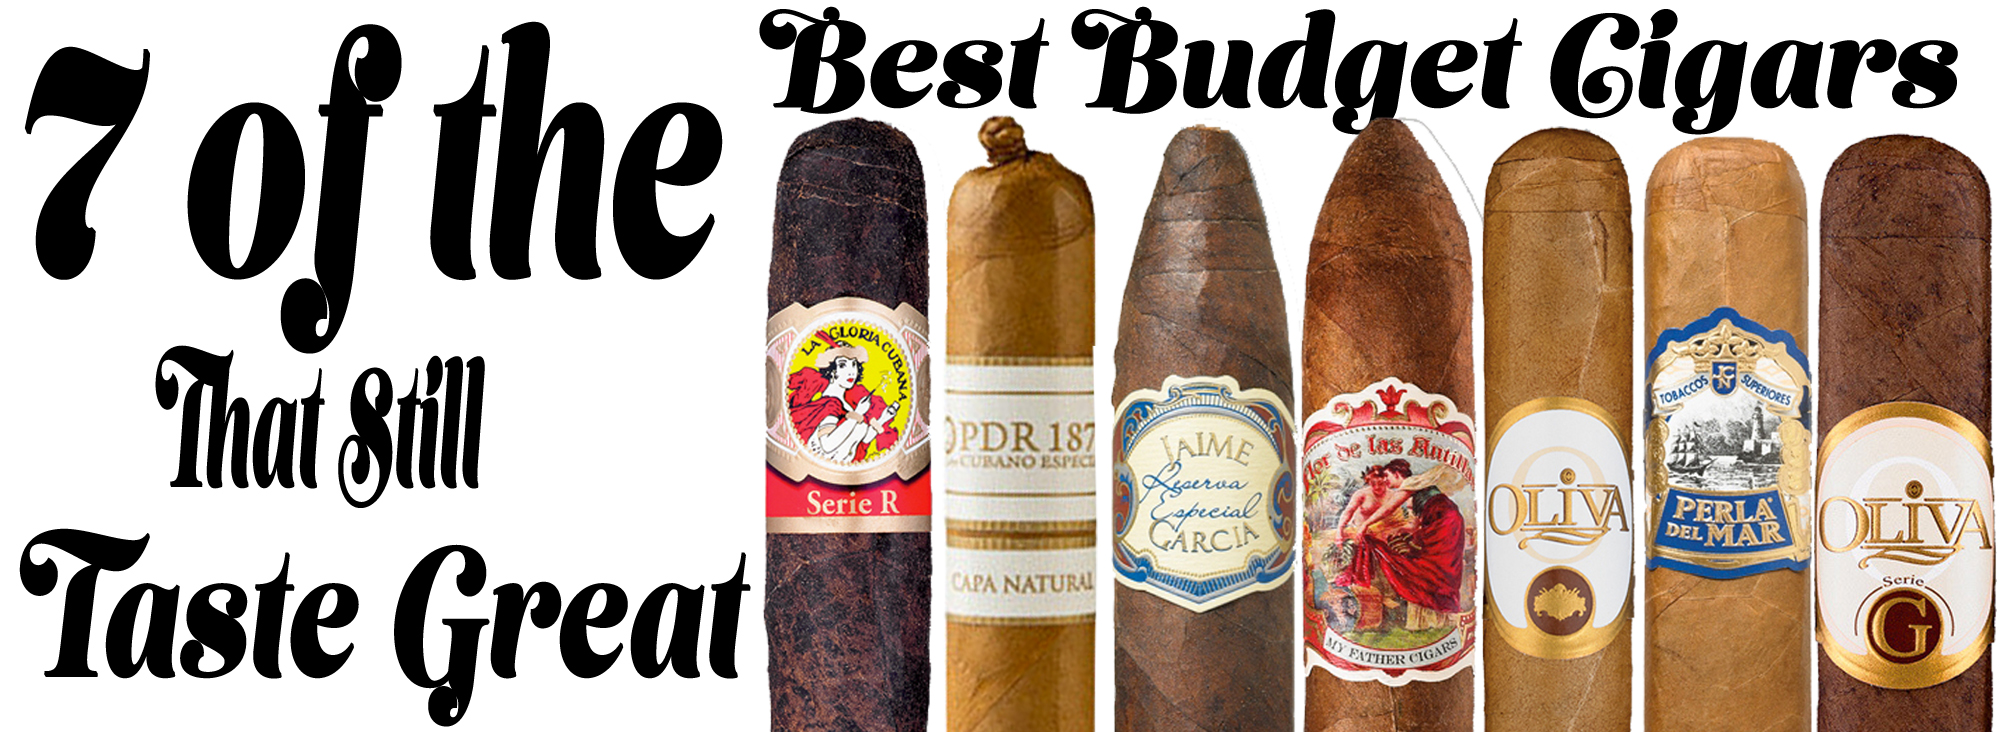 7 of the best budget cigars